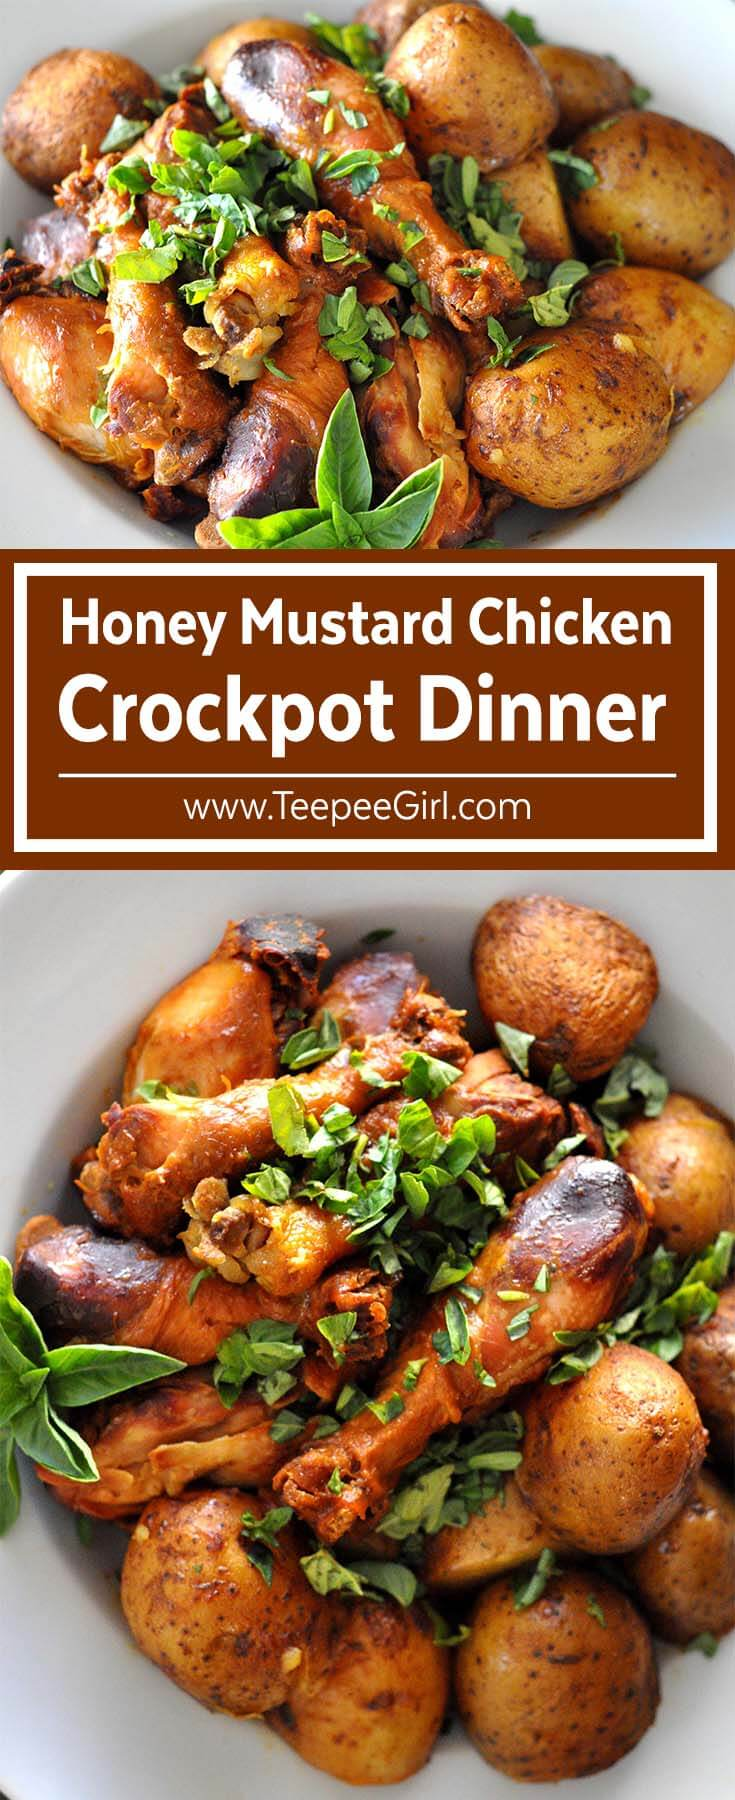 This easy & delicious Crockpot Honey Mustard Chicken & Potatoes is the perfect meal for busy weeknights! It's hearty, rich, and totally scrumptious! Click here to get the recipe or go to www.TeepeeGirl.com.